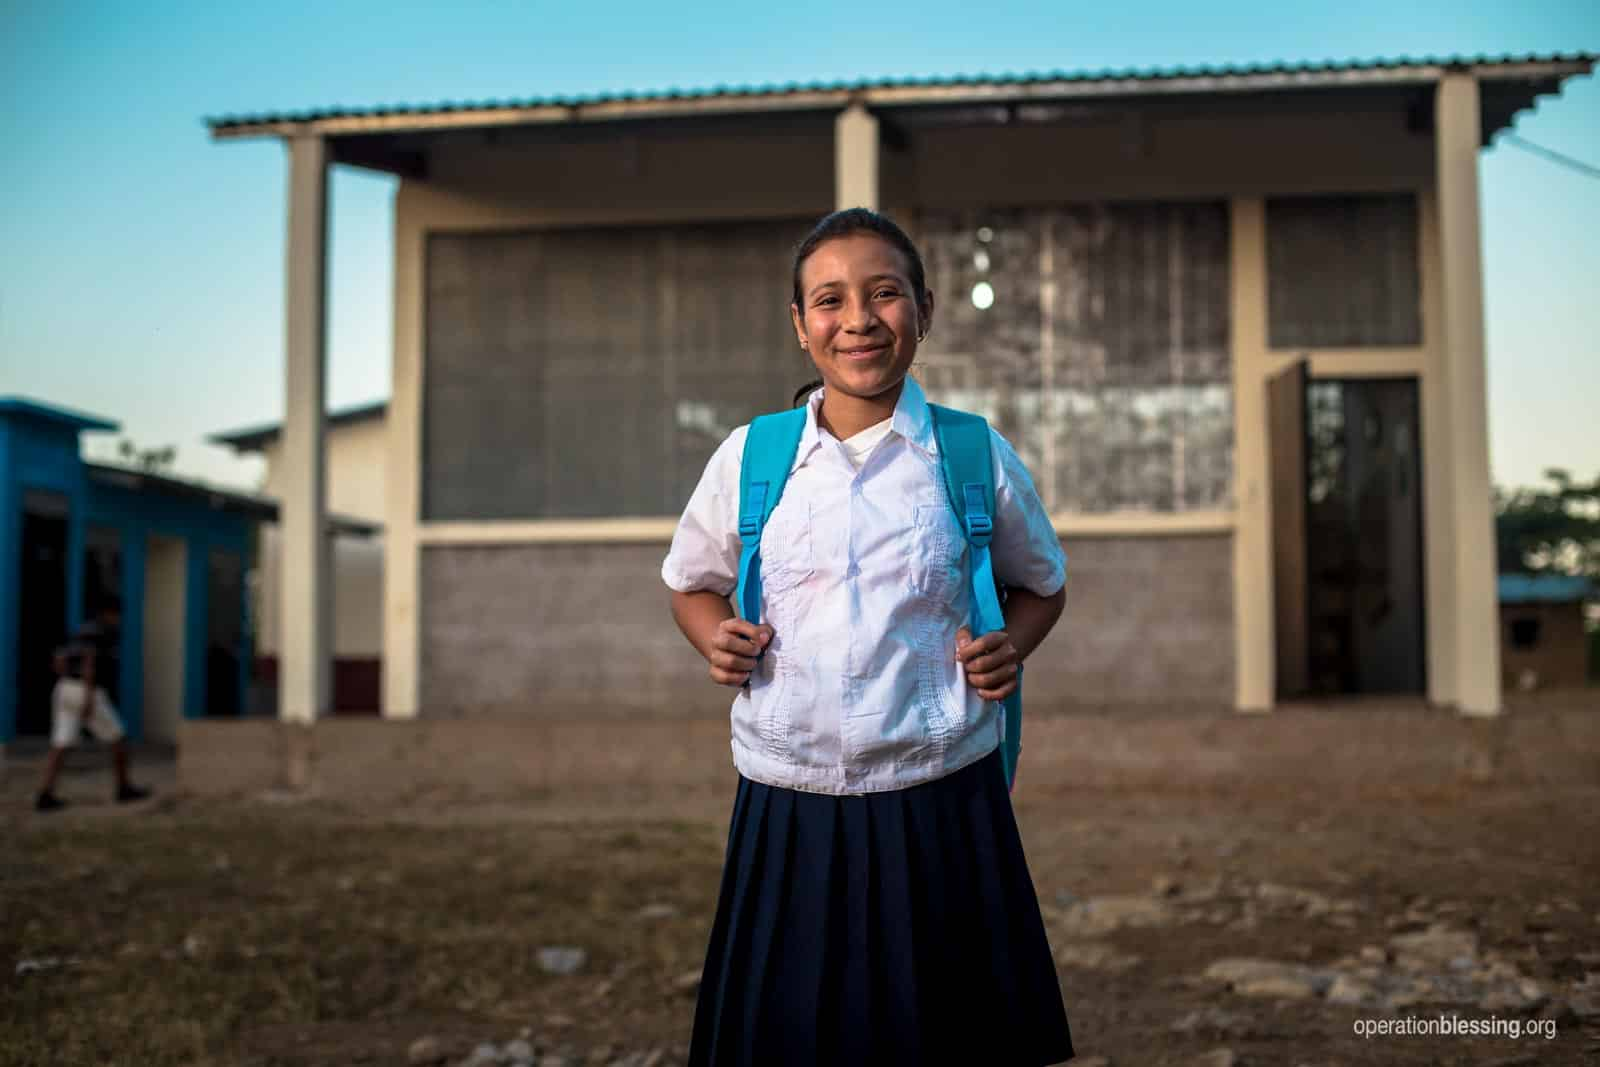 July happenings kicks off as twelve-year-old Stephany stands in front of the brand new school that Operation Blessing recently built in her community.